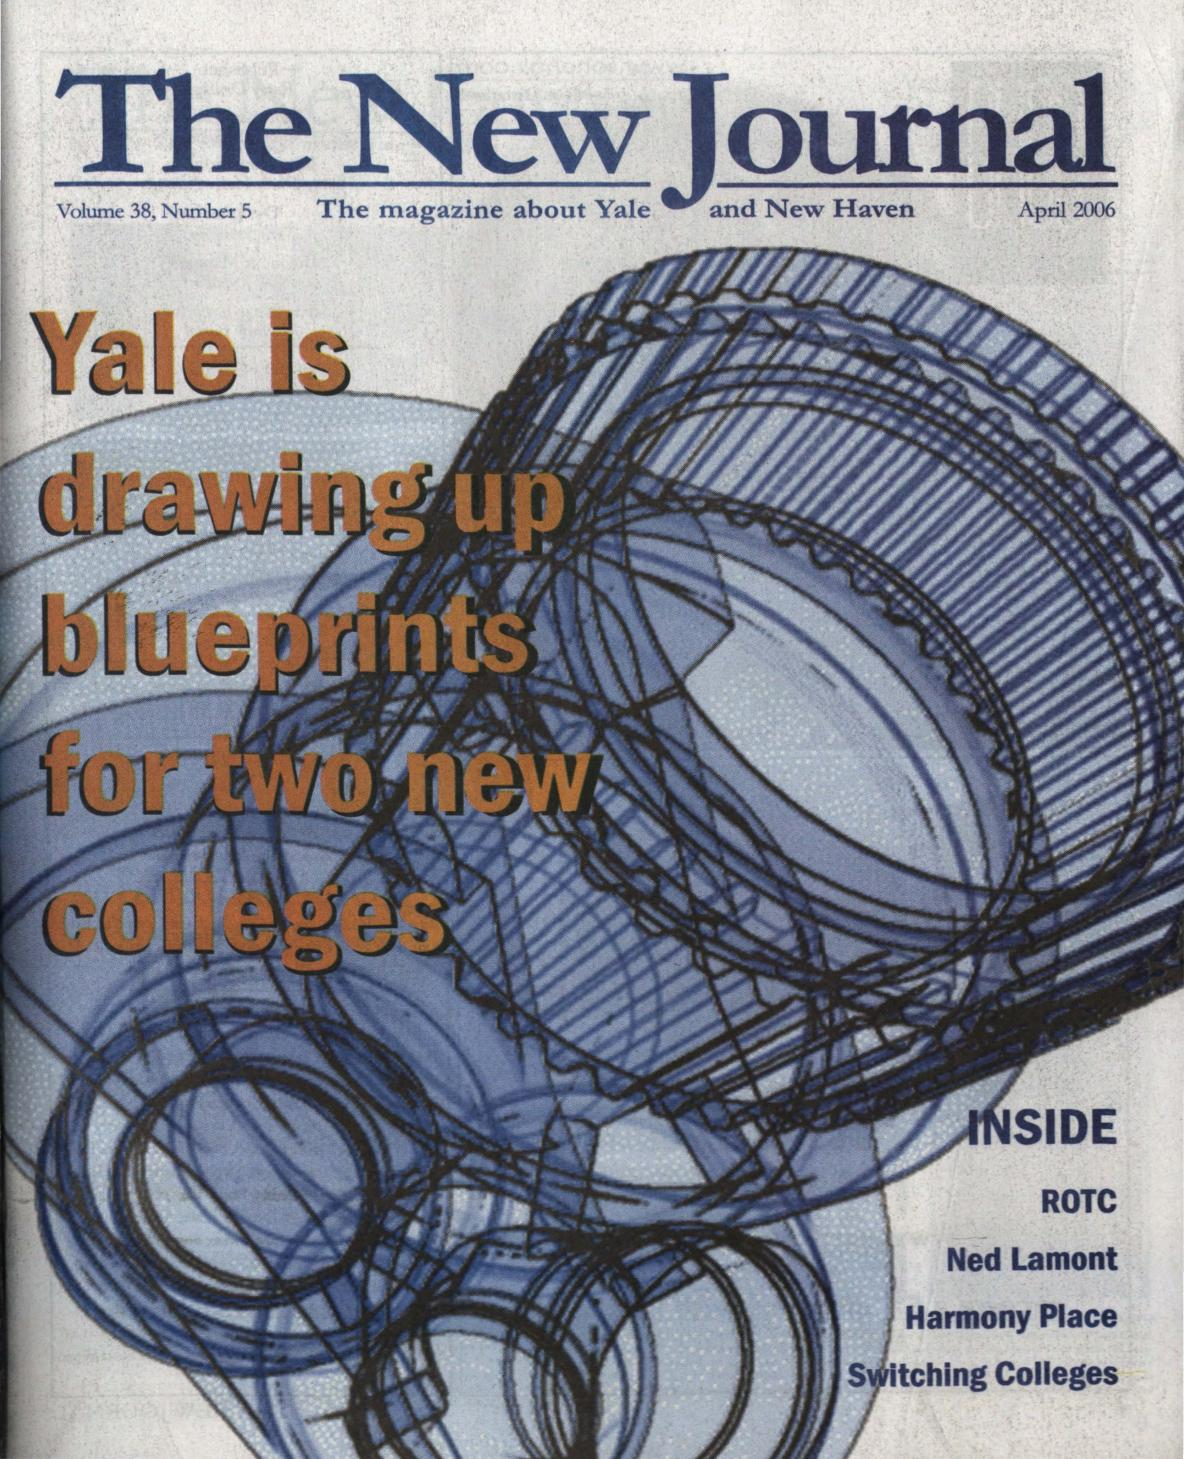 Volume 38 - Issue 5 by The New Journal at Yale - issuu